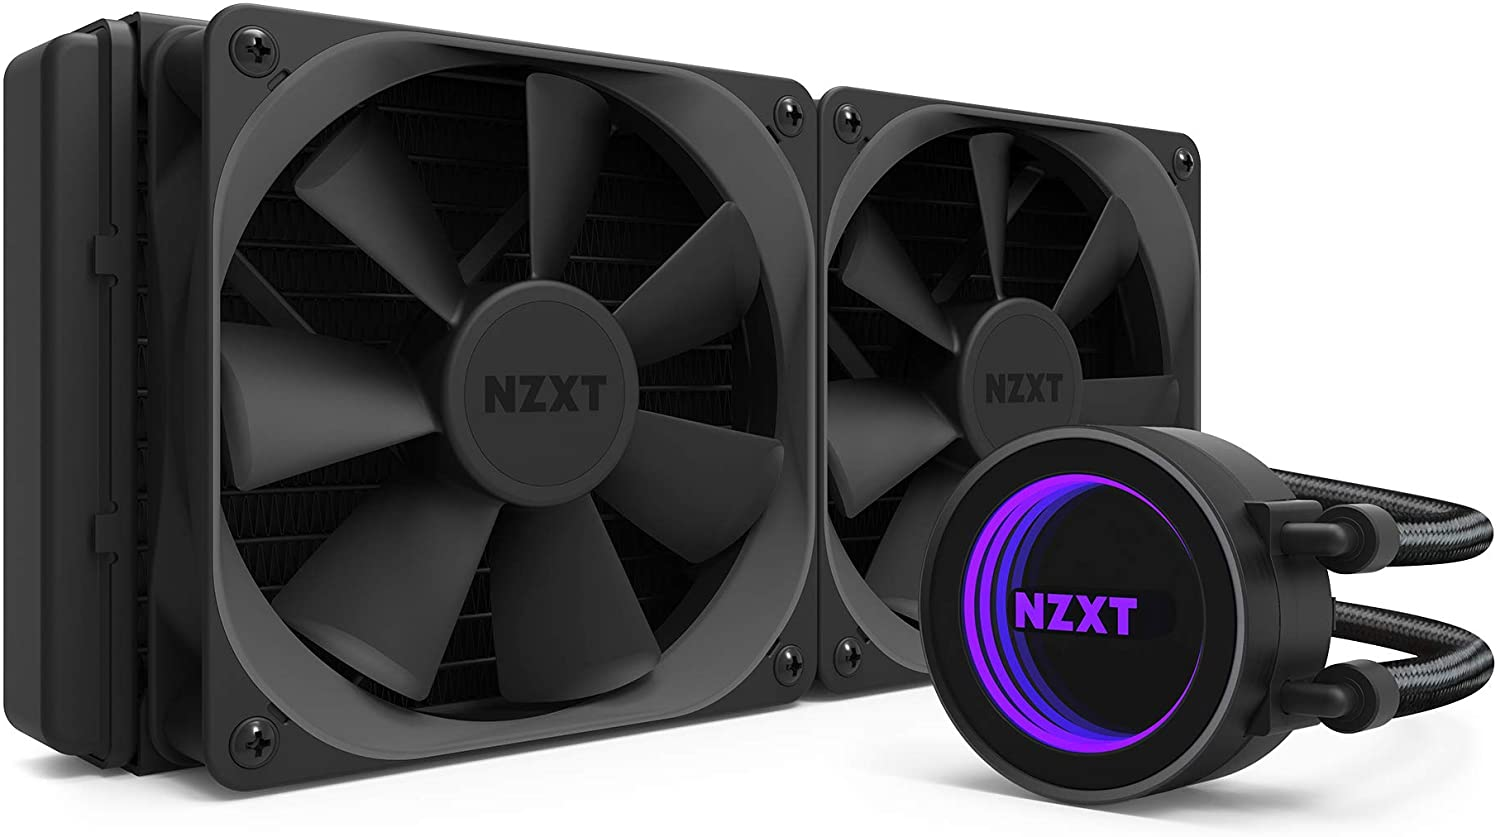 Amazon.com: NZXT Kraken X52 240mm - All-in-One RGB CPU Liquid ...